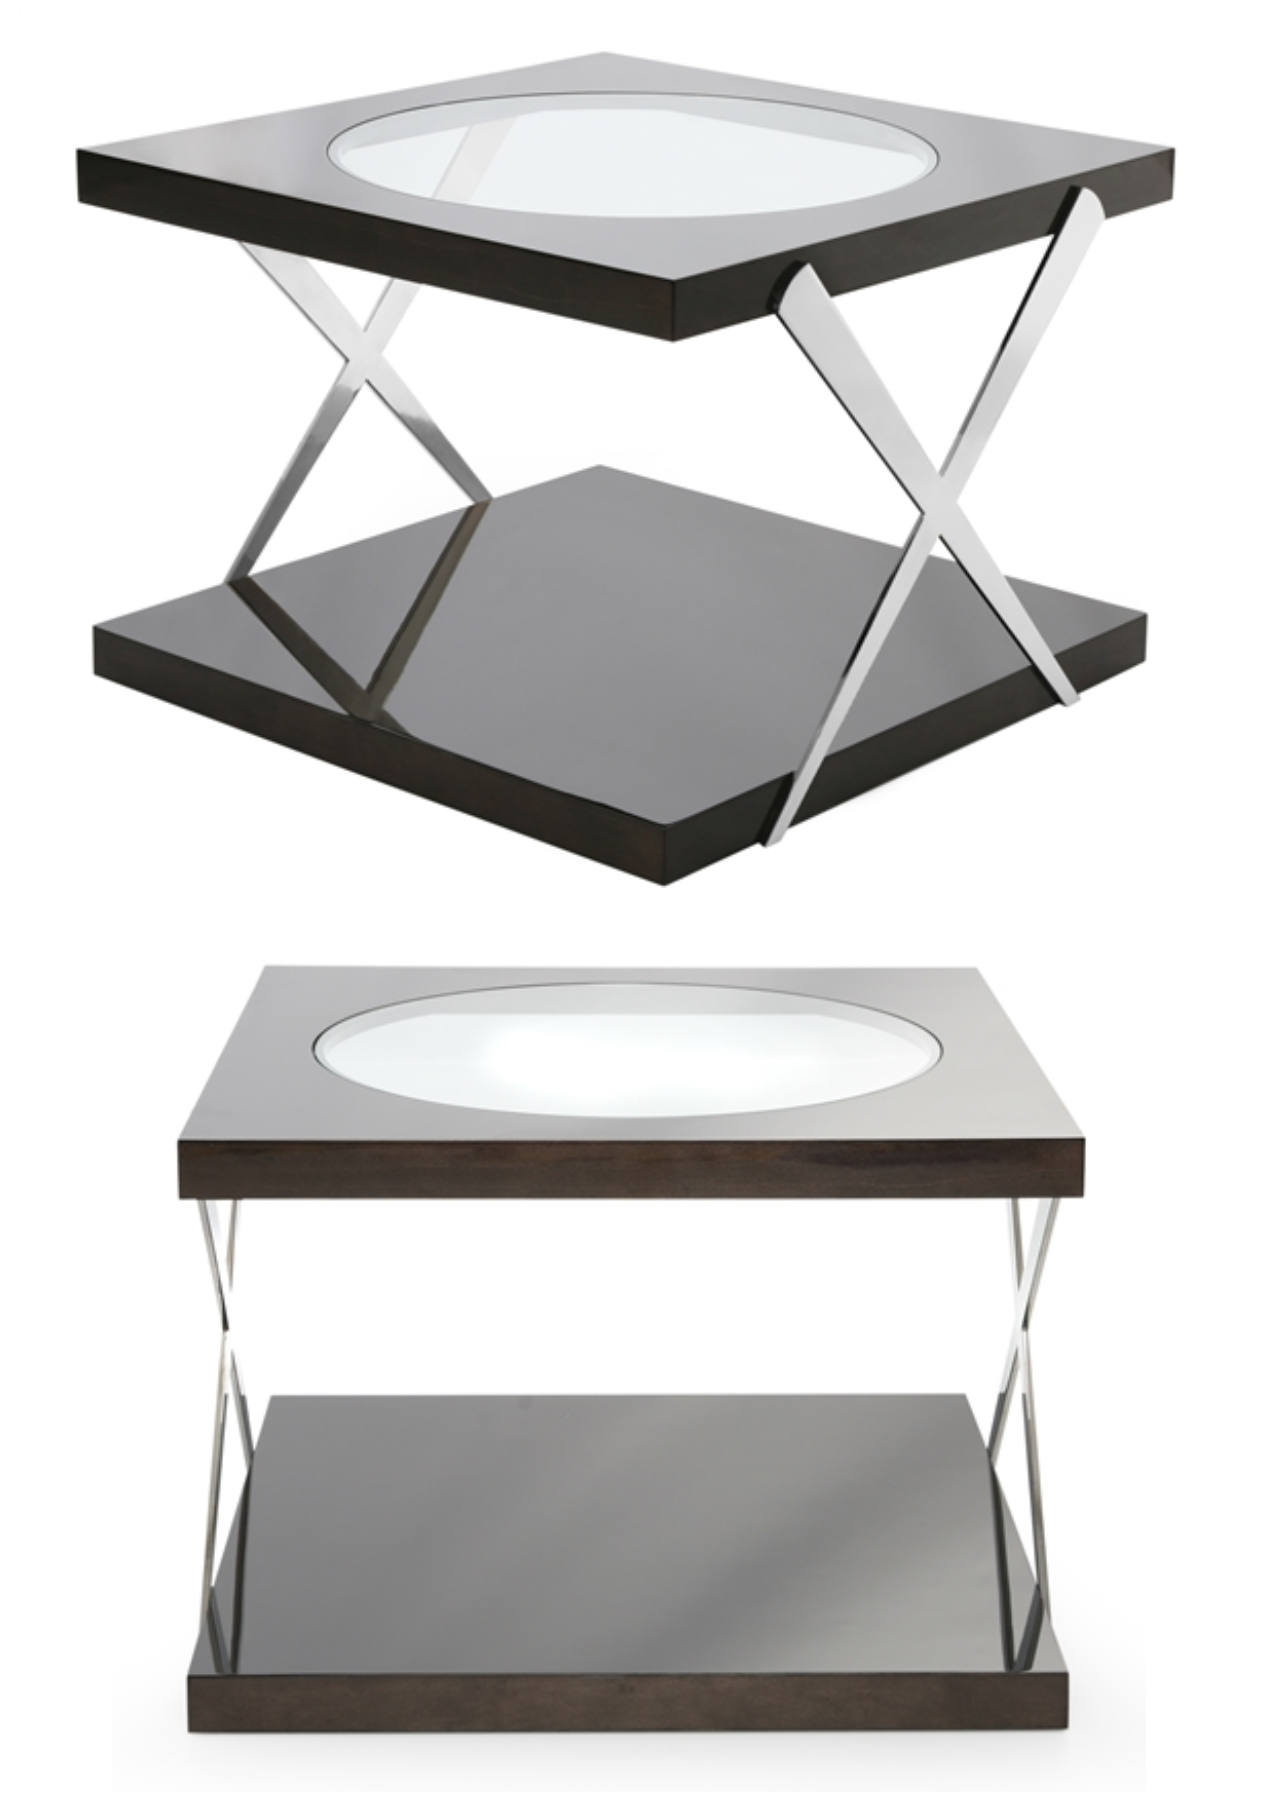 The Sharp Angles Of The Horizon Coffee Tables Square Silhouette And - Picnic table leg angle